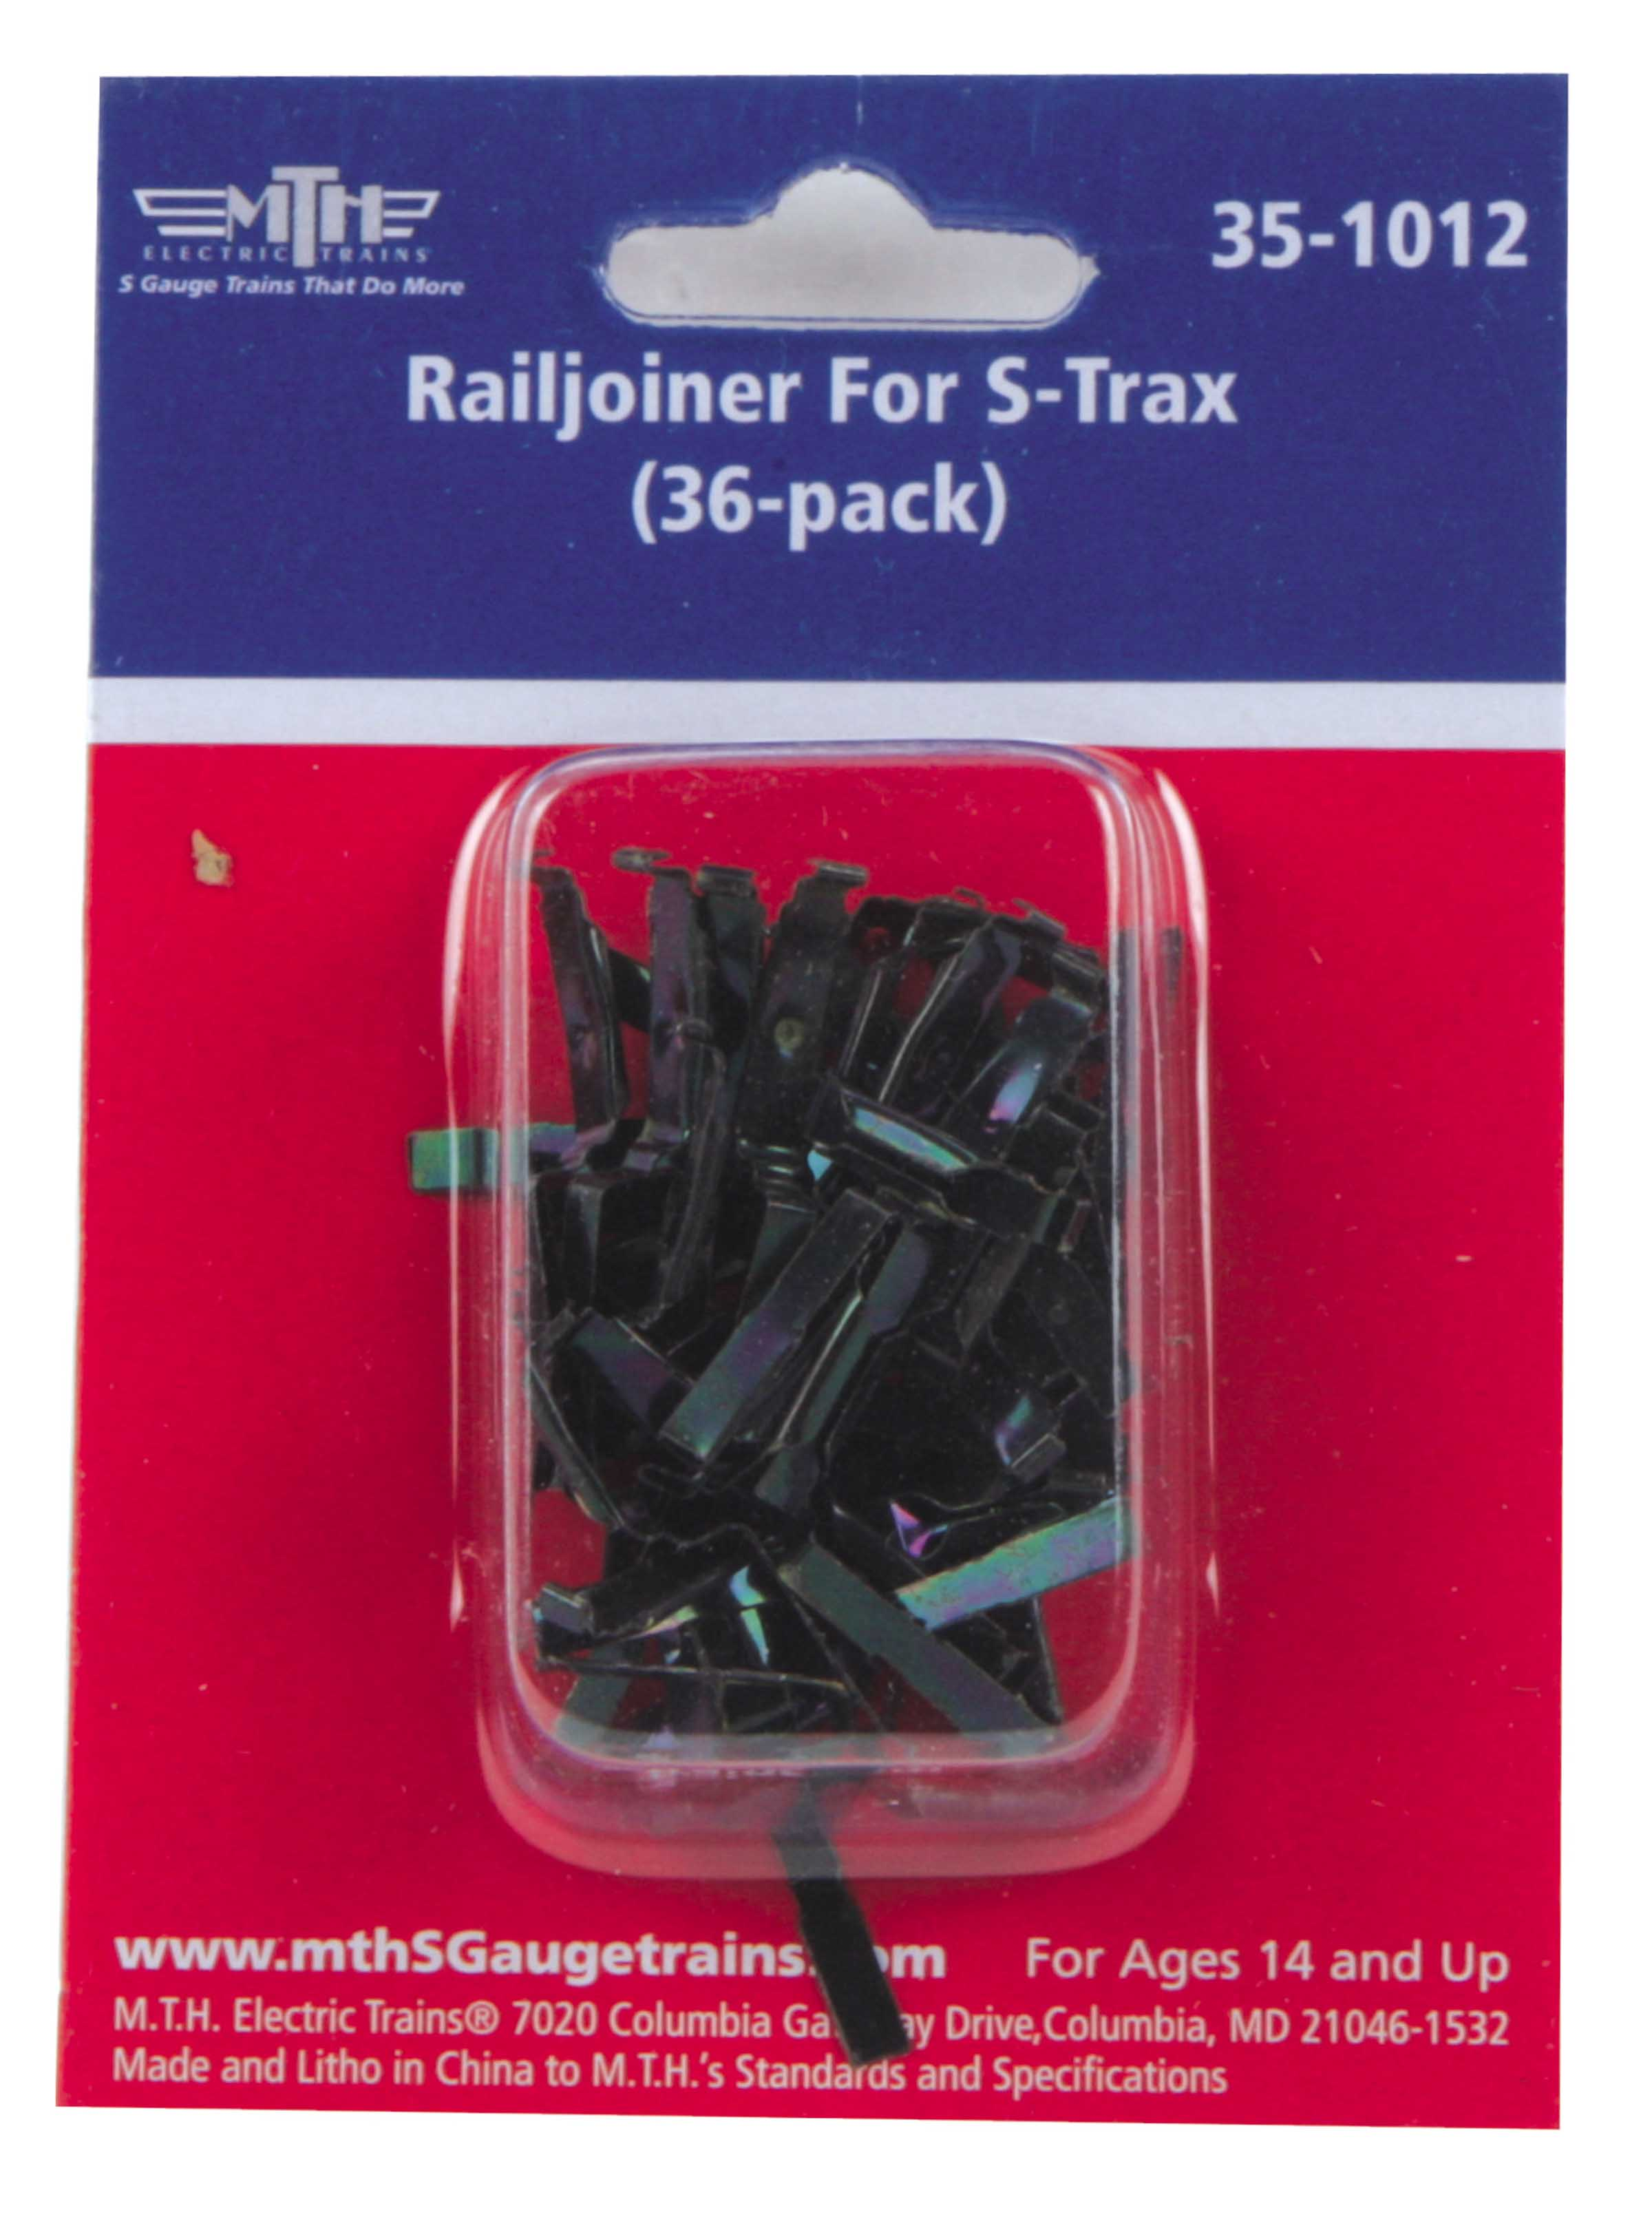 MTH 35-1012 S Railjoiner for STrax (Pack of 36) This is a MTH 35-1012 S Railjoiner for STrax (36-Pack). These all-metal Railjoiners slide onto STrax Flex Track sections bridging electrical contact from one section of track to the next.STrax is simply the easiest S Gauge track system ever manufactured. Featuring durable metal 155# Code 125 Solid Nickel-Silver T Section Rails strong enough to stand on and a built-in roadbed for a realistic appearance ensures that an STrax layout will last for years while sporting a realistic appearance not found in other S Gauge track systems.Following the specifications of the Pennsylvania Railroad for rail, ties, ballast and grading from the 1950's, each sectional component is designed with positive mechanical and electrical connections. The integrated, built-in track roadbed provides for an easy-to-use, realistic appearance. Because the roadbed is solid, STrax is perfect for temporary carpet based layouts. The built-in roadbed prevents any dirt from staining your carpet and it comes apart easily allowing temporary layout to be disassembled in minutes.While the STrax system employs durable nickel-silver rails that won't rust or oxidize in an outdoor environment, the plastic roadbed and rail ties are constructed of ABS plastic that can be compromised outdoors. Essentially, ABS plastic is not designed to withstand extreme temperature swings and can distort (in high heat) or crack in extreme cold. In addition, the plastic will tend to fade in color since it has not been treated with UV resistant paint. As a result, we do not recommend that STrax be used outdoors. Product Features: Metal Construction, Mates To STrax Track Sections, except Flex Track.Condition: Factory New (C-9All original; unused; factory rubs and evidence of handling, shipping and factory test run.Standards for all toy train related accessory items apply to the visual appearance of the item and do not consider the operating functionality of the equipment.Condition and